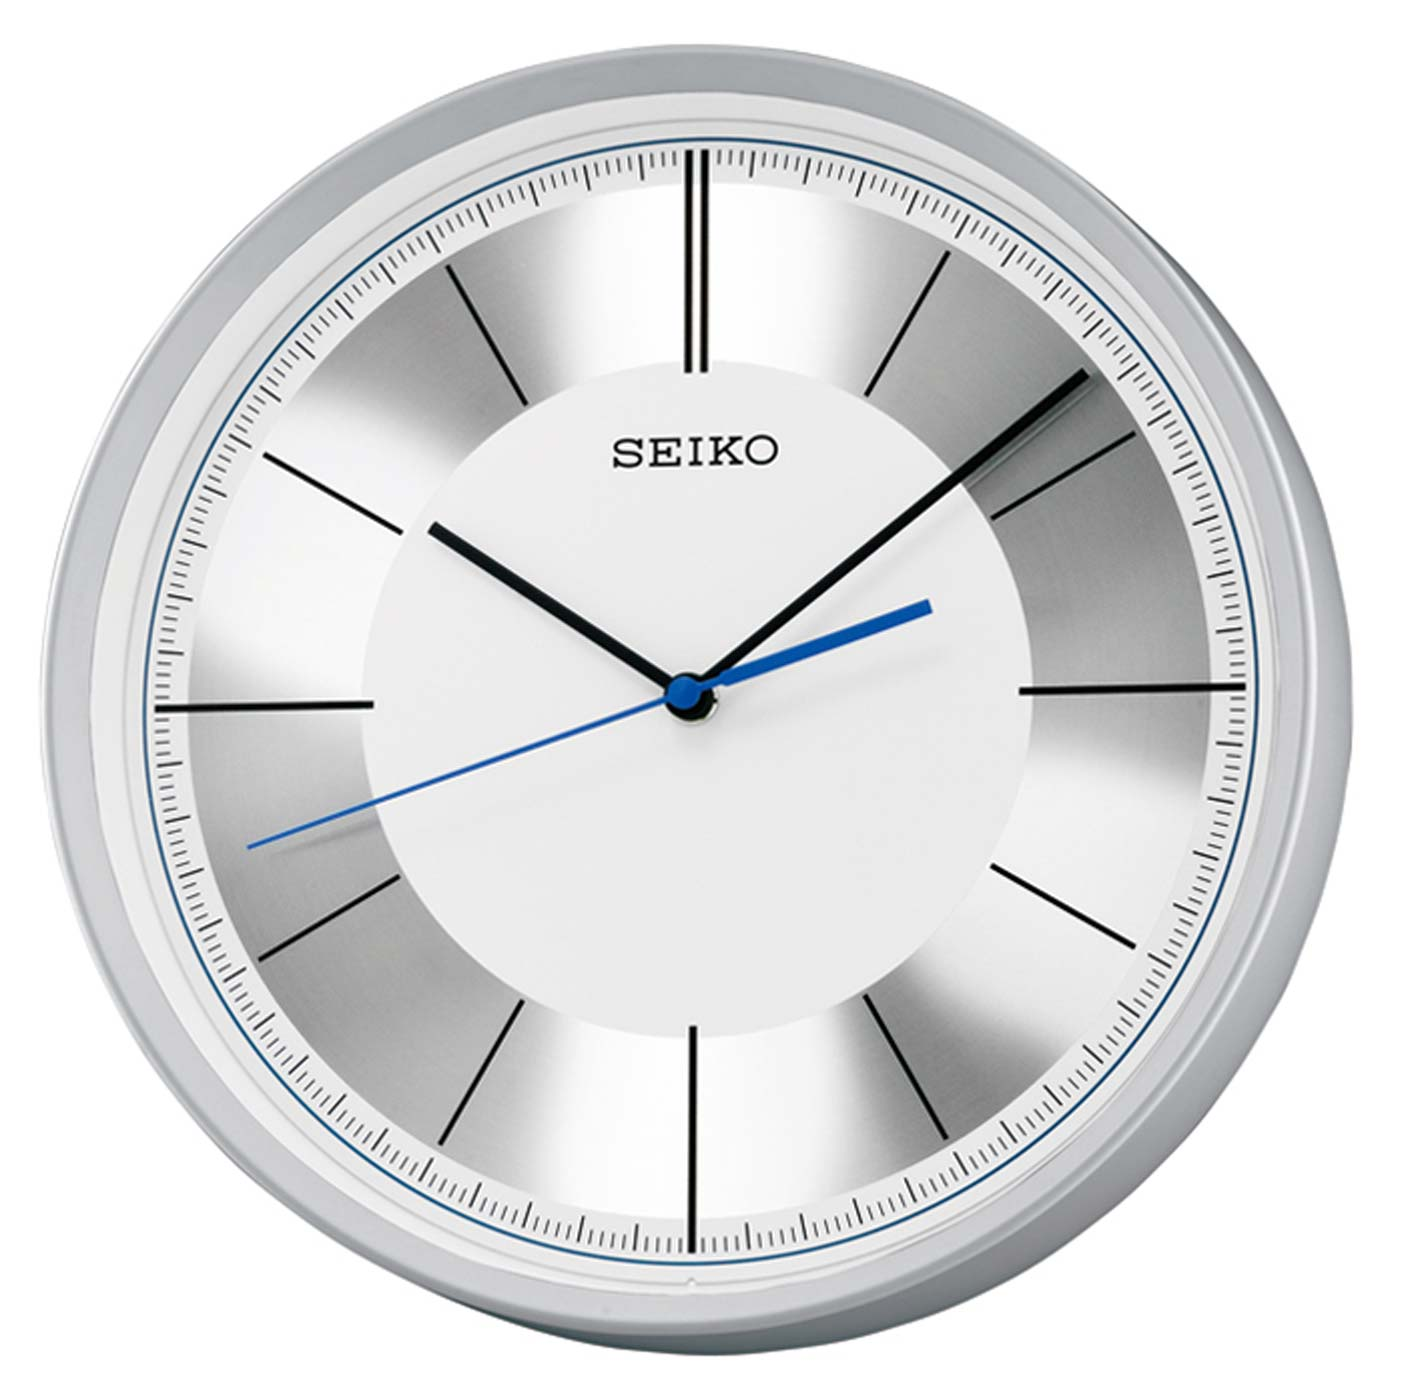 seiko qxa612s wanduhr ger uschlose uhr uhren neu ebay. Black Bedroom Furniture Sets. Home Design Ideas